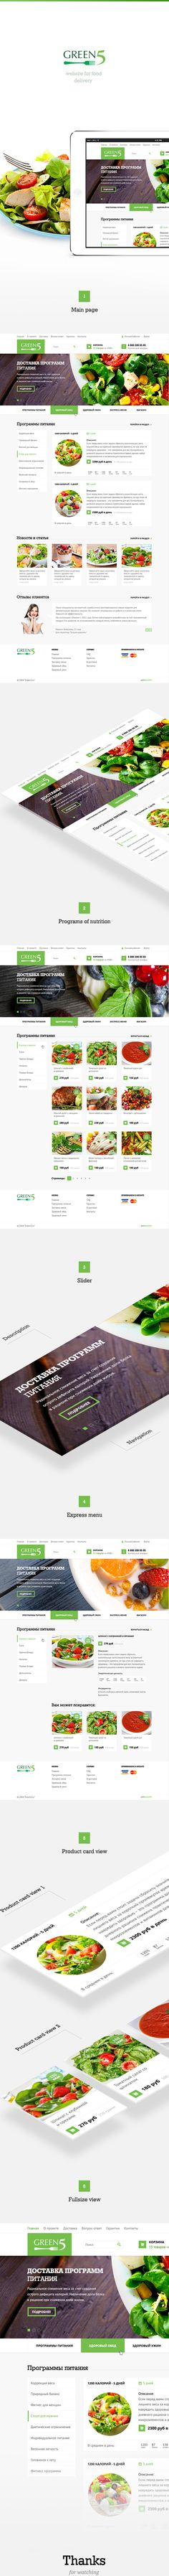 Green5 – eco food delivery on Behance